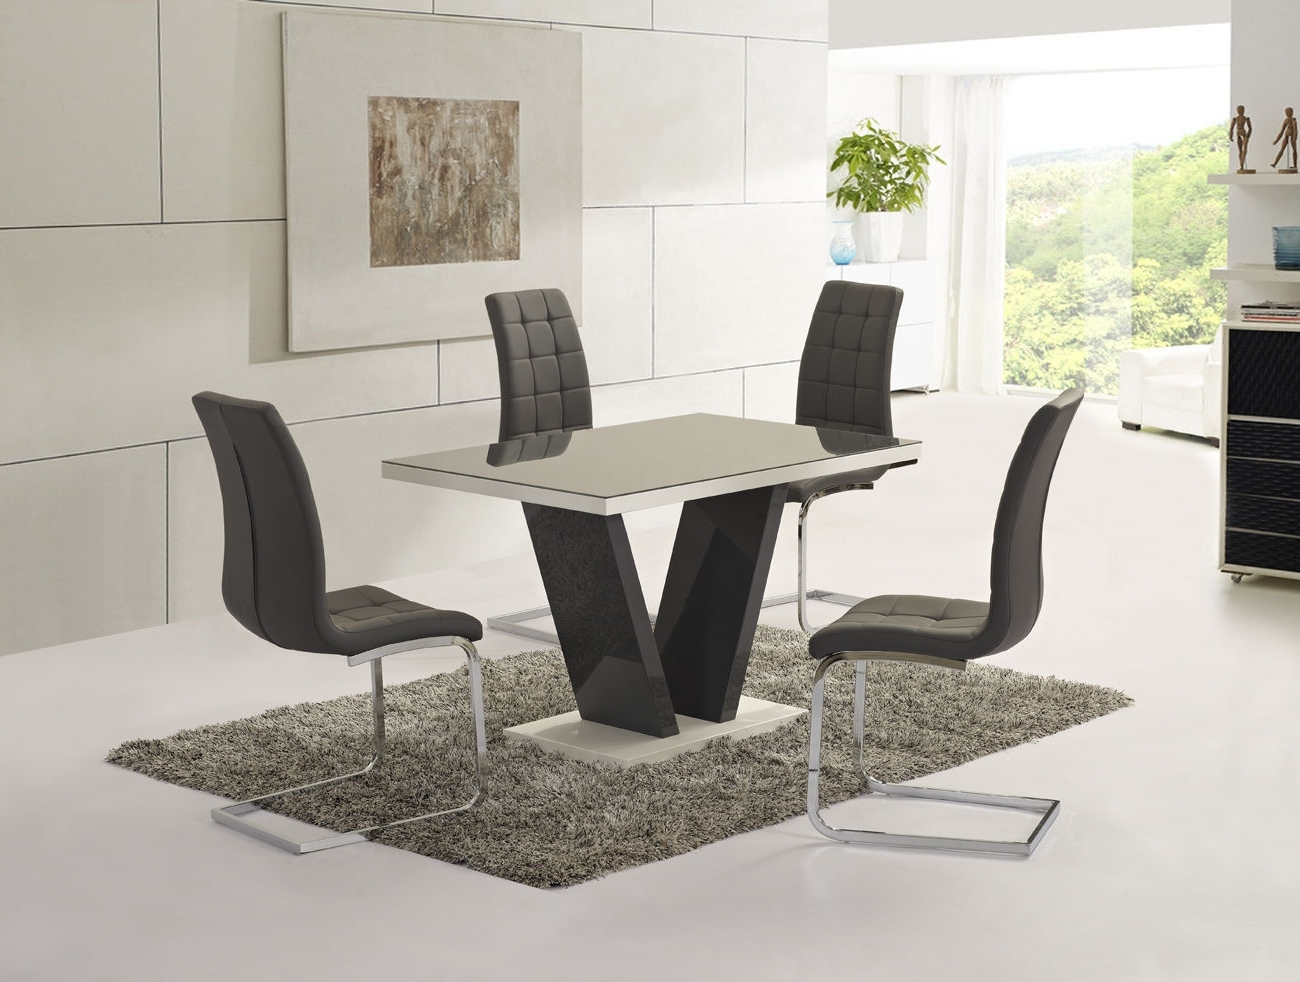 Popular Dining Tables Grey Chairs With Regard To Agreeable Small Black Gloss Dining Table Chairs High Harveys Grey (Gallery 22 of 25)